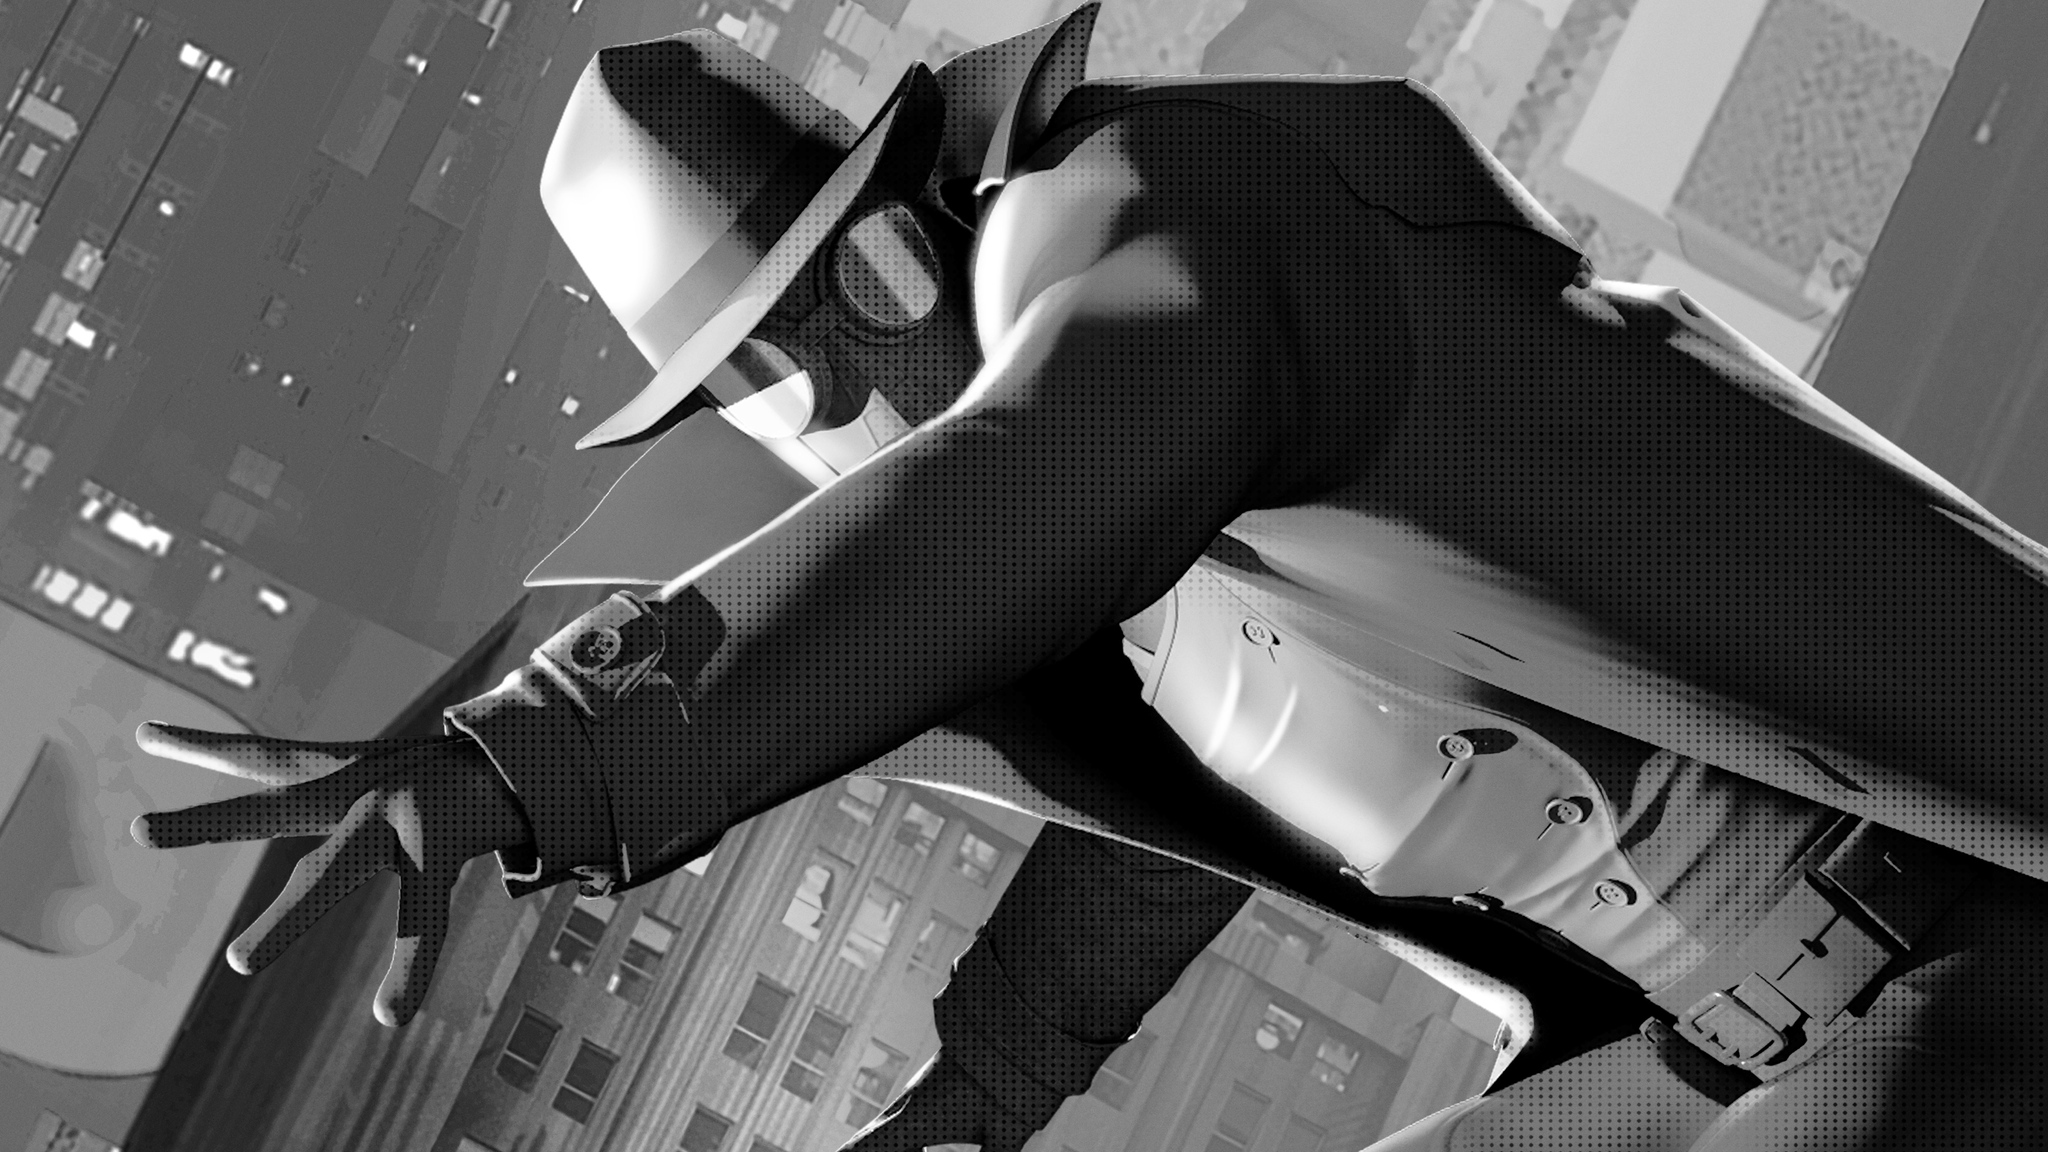 2048x1152 Spider Man Noir 2048x1152 Resolution Hd 4k